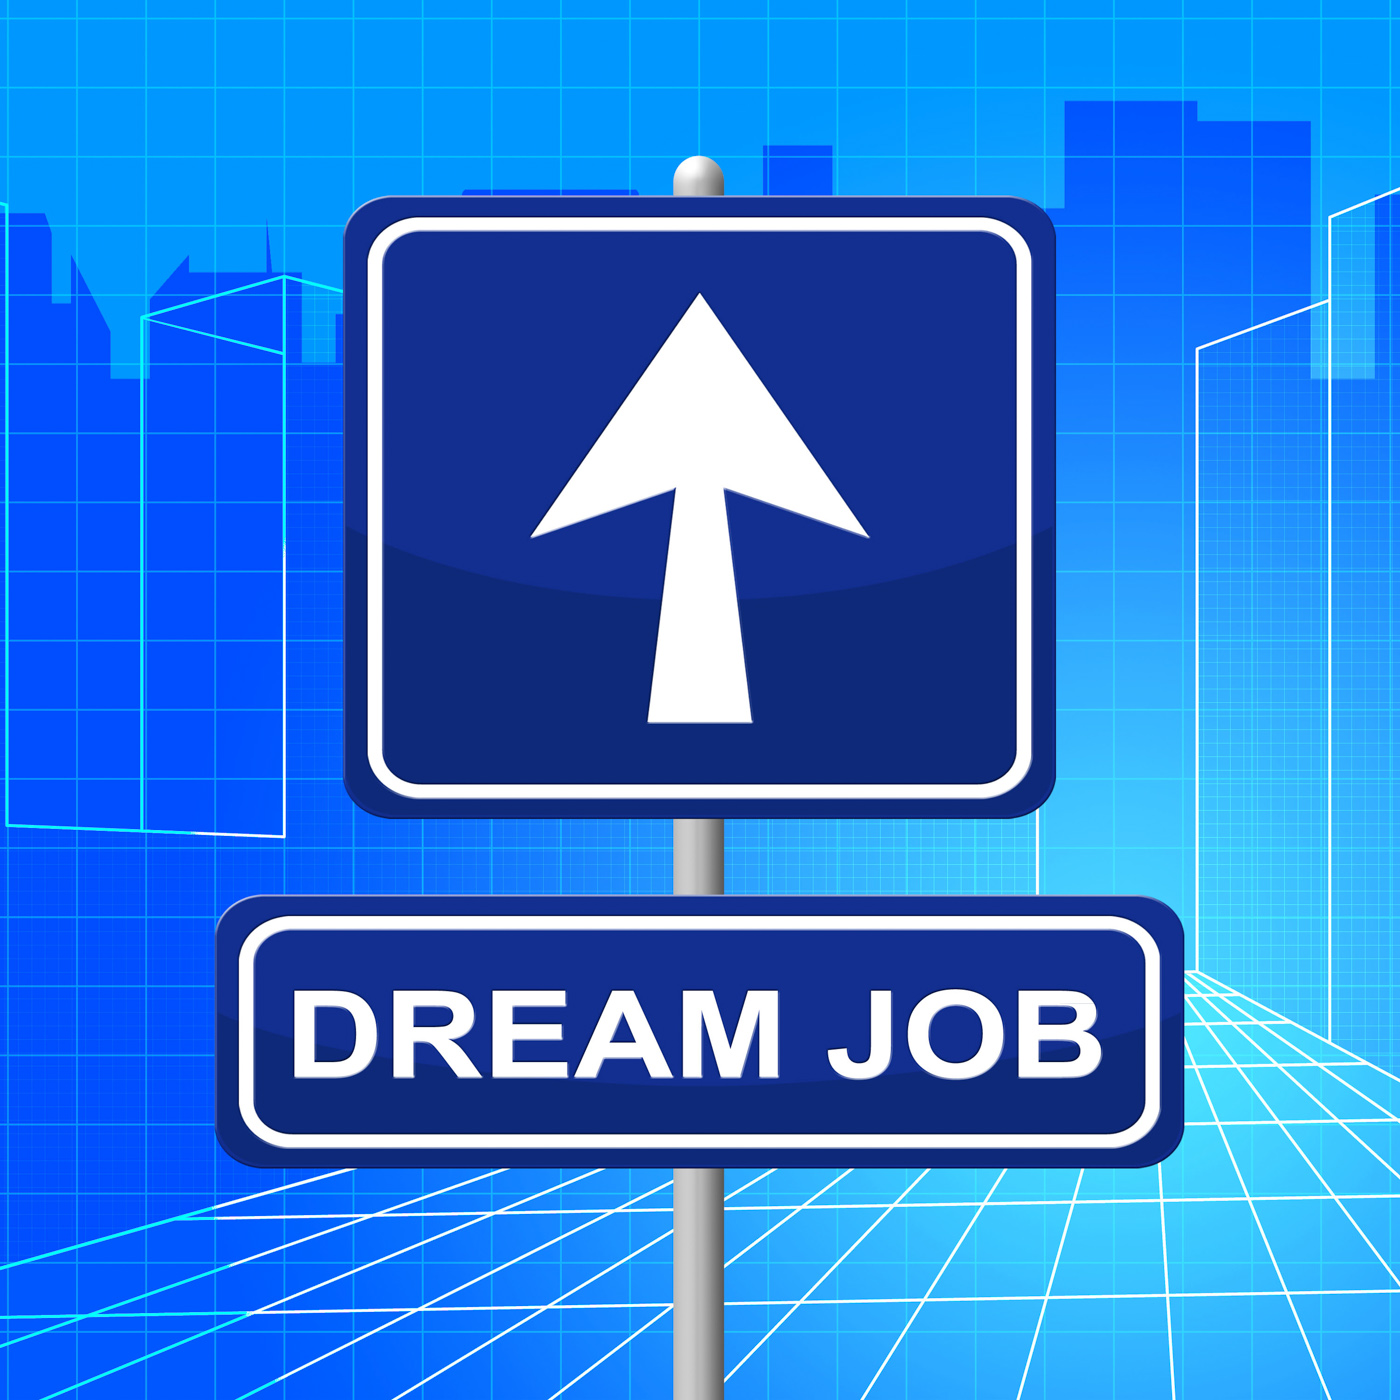 Dream Job Means Recruitment Arrow And Display, Occupation, Placard, Plan, Plans, HQ Photo